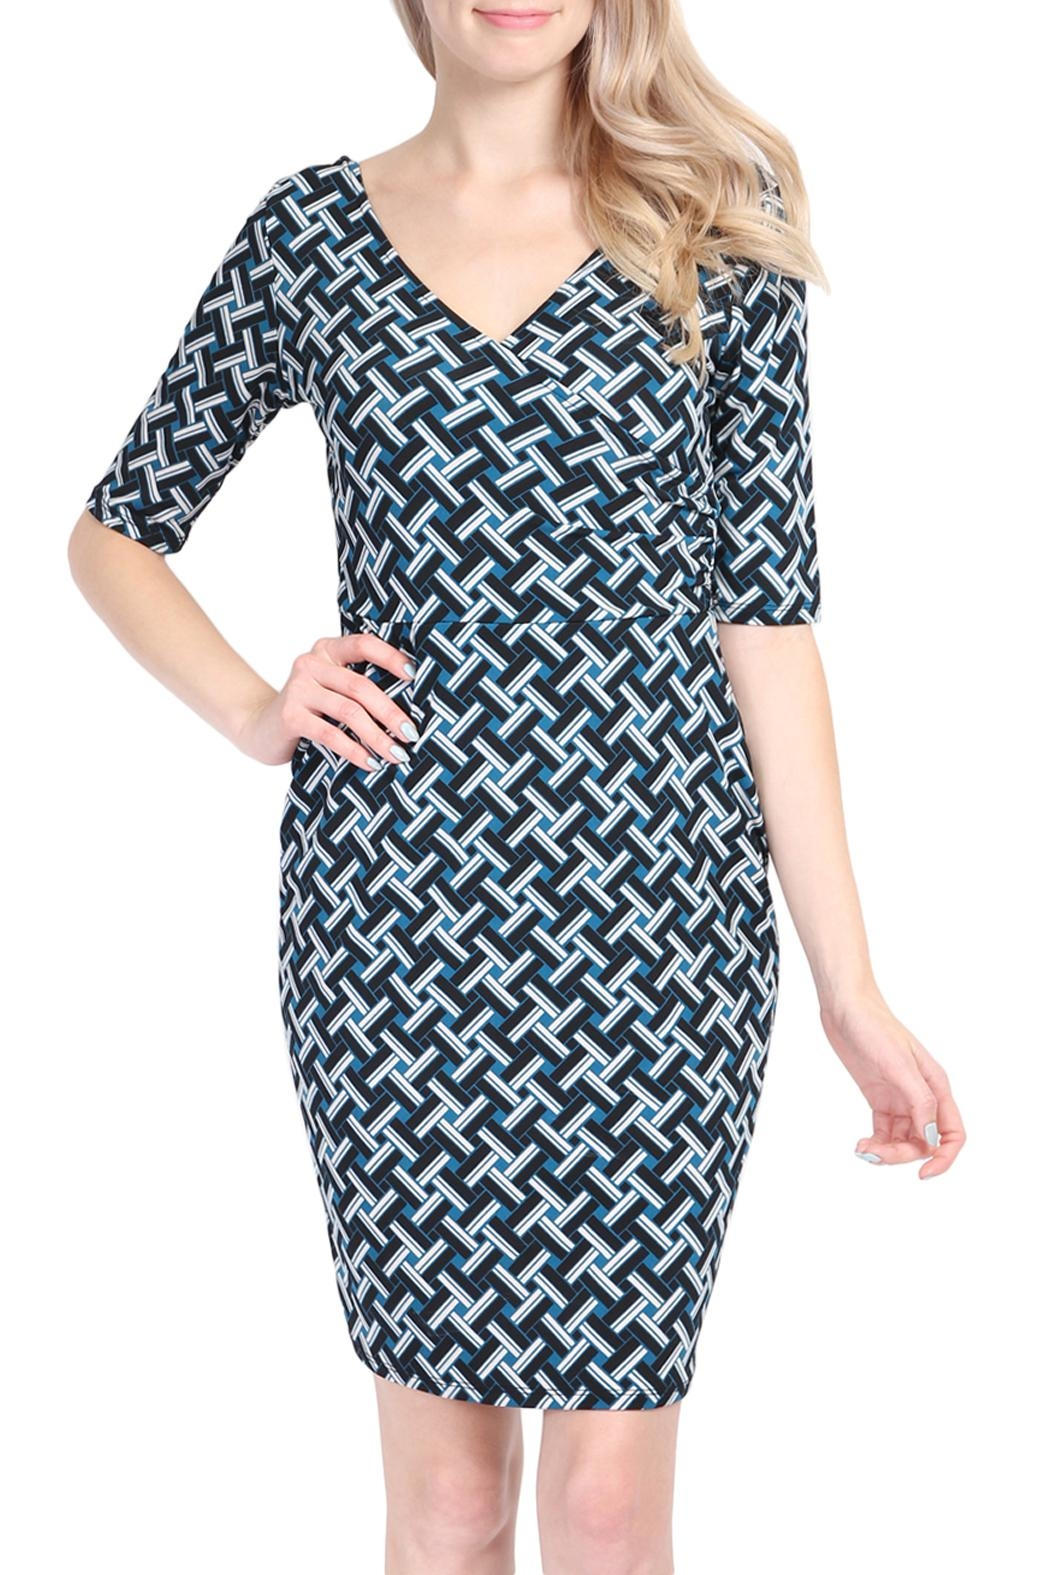 Riah Fashion Geometrical Pattern Dress - Main Image